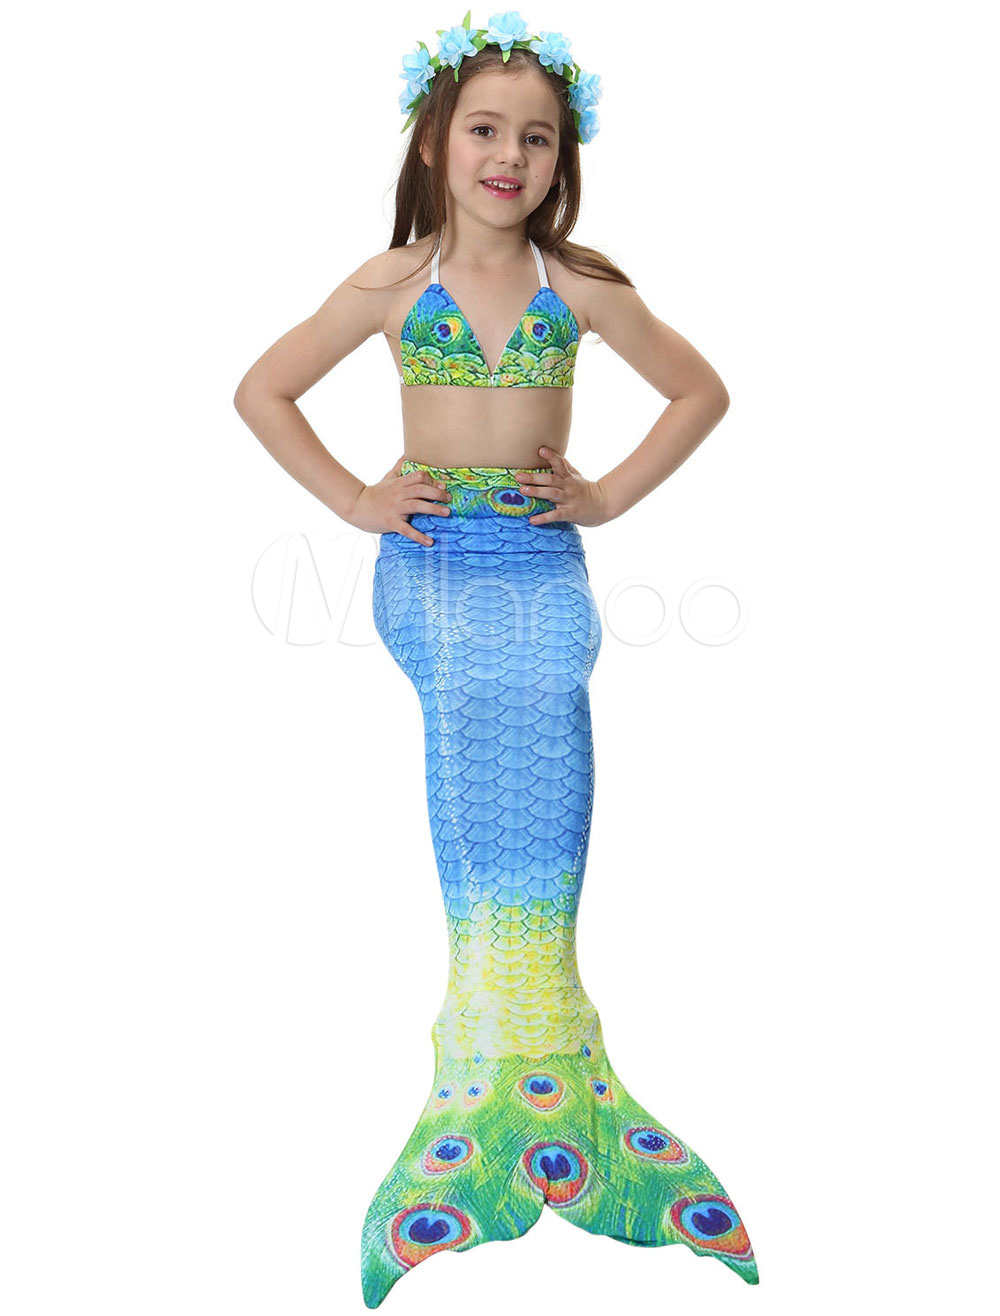 7424090d2d191 Kids Mermaid Tail Costume Little Girls Swimsuits Peacock Printed ...